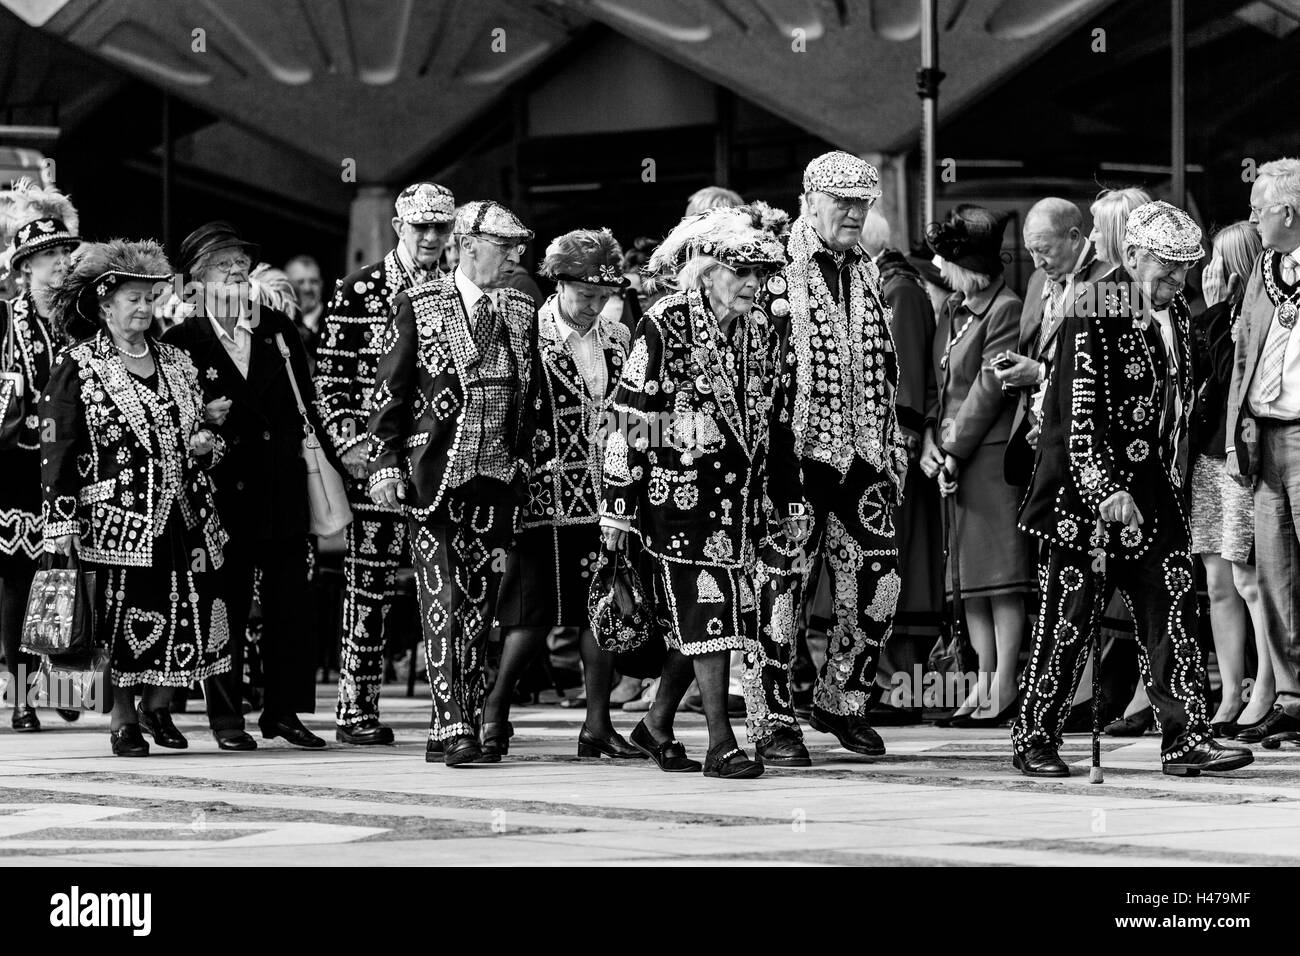 Pearly Kings and Queens Parade Around The Guildhall Yard During The Annual Pearly Kings and Queens' Harvest - Stock Image